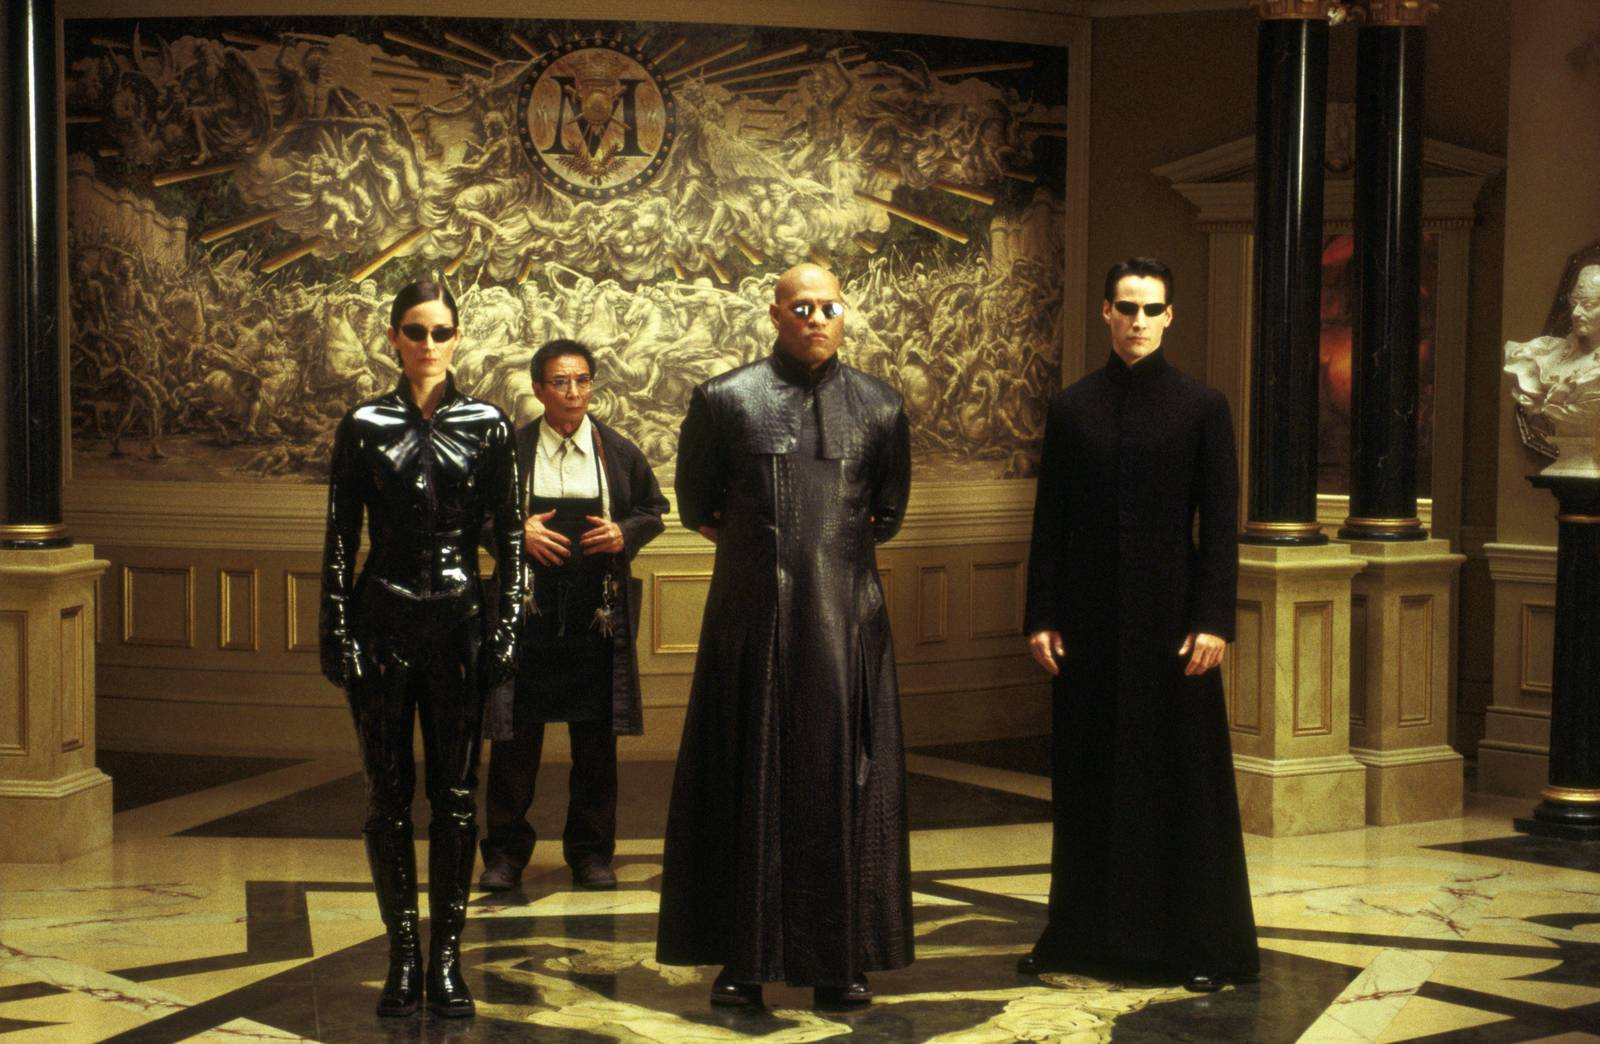 Character ine-up - (l to r) Trinity (Carrie-Anne Moss), The Keymaker (Randall Duk Kim), Morpheus (Laurence Fishburne) and Neo (Keanu Reeves) in The Matrix Reloaded (2003)